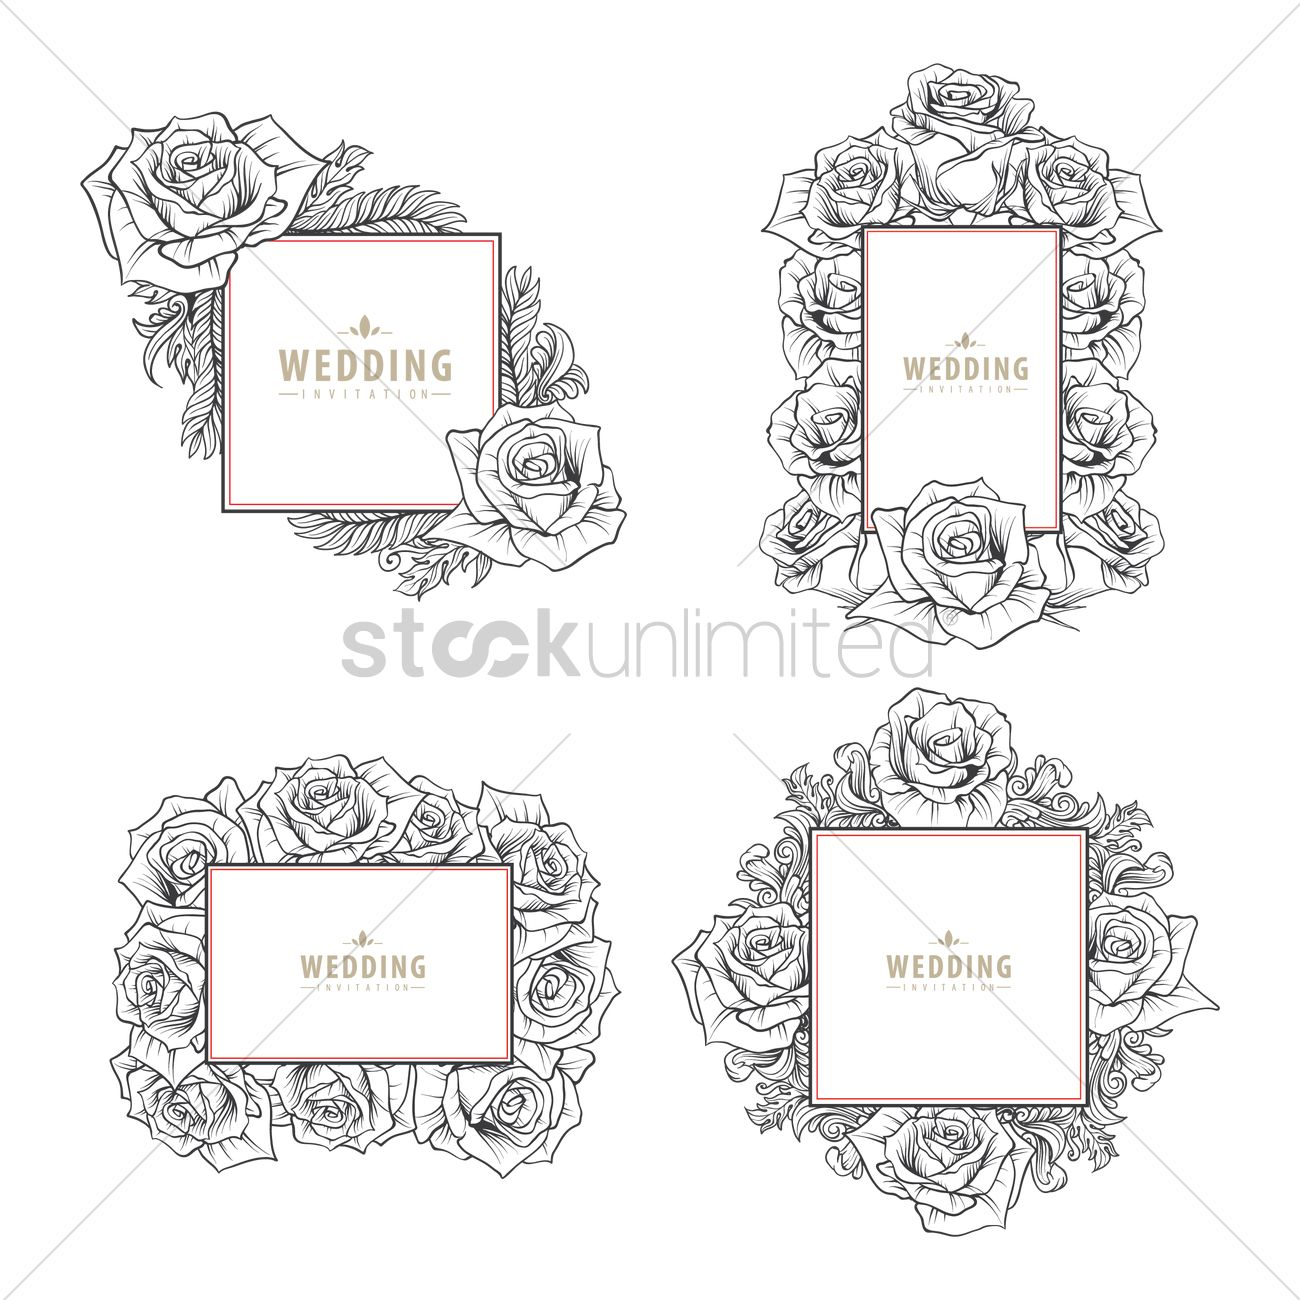 Set of wedding invitation cards Vector Image - 1821721 | StockUnlimited